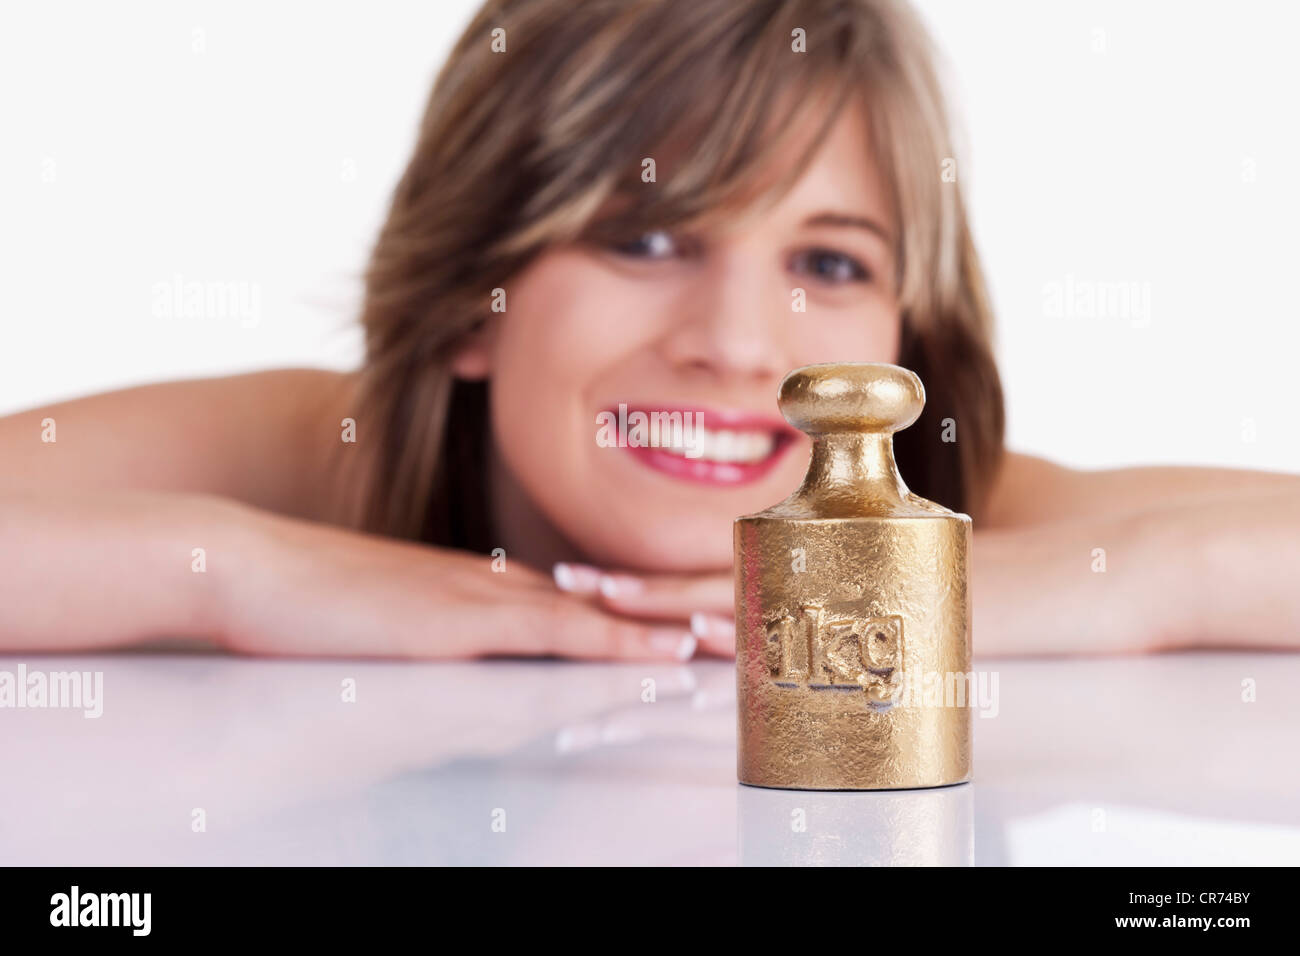 Young woman with 1 kg weight, smiling, portrait - Stock Image